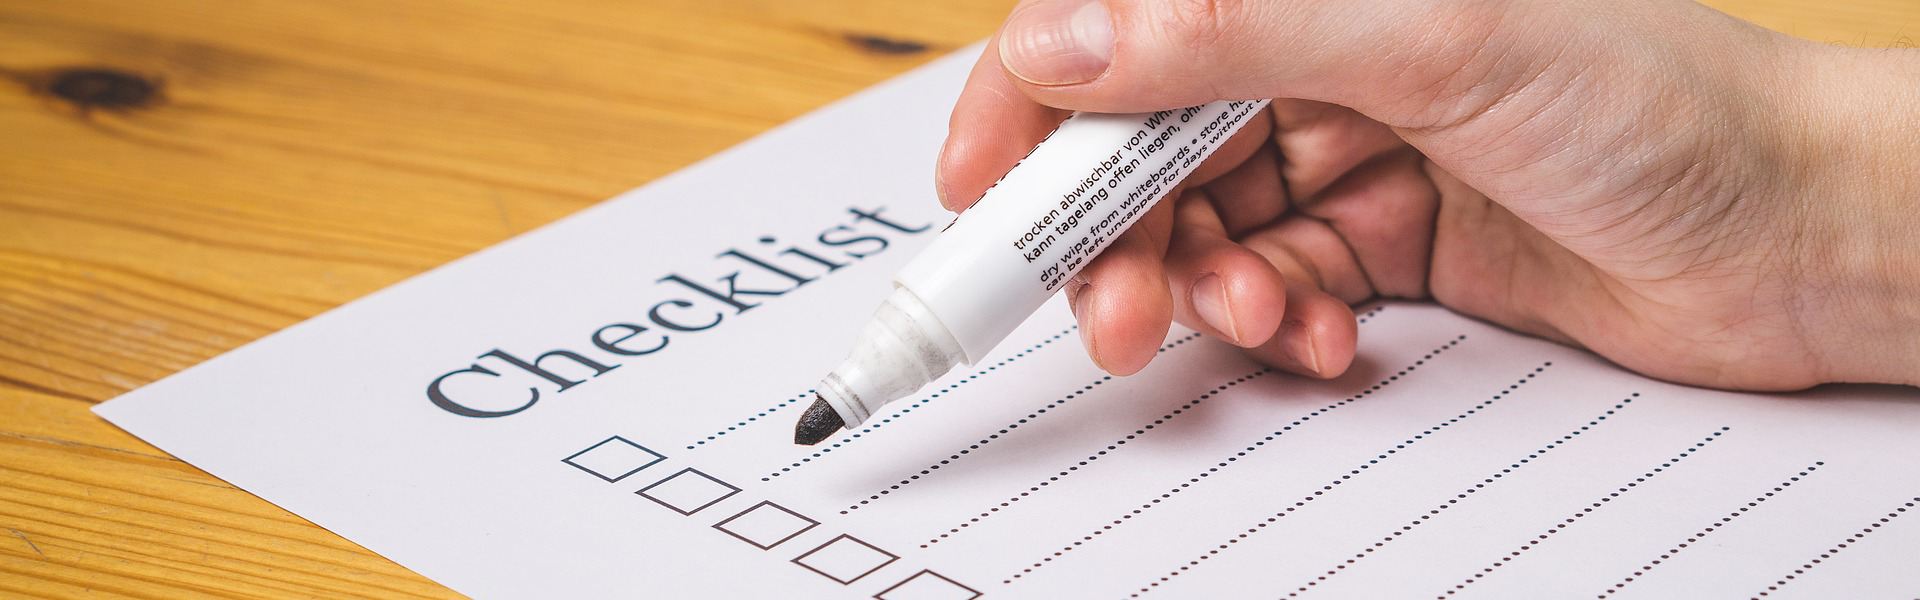 10 Items That Should Be Included In A Certificate Of Destruction